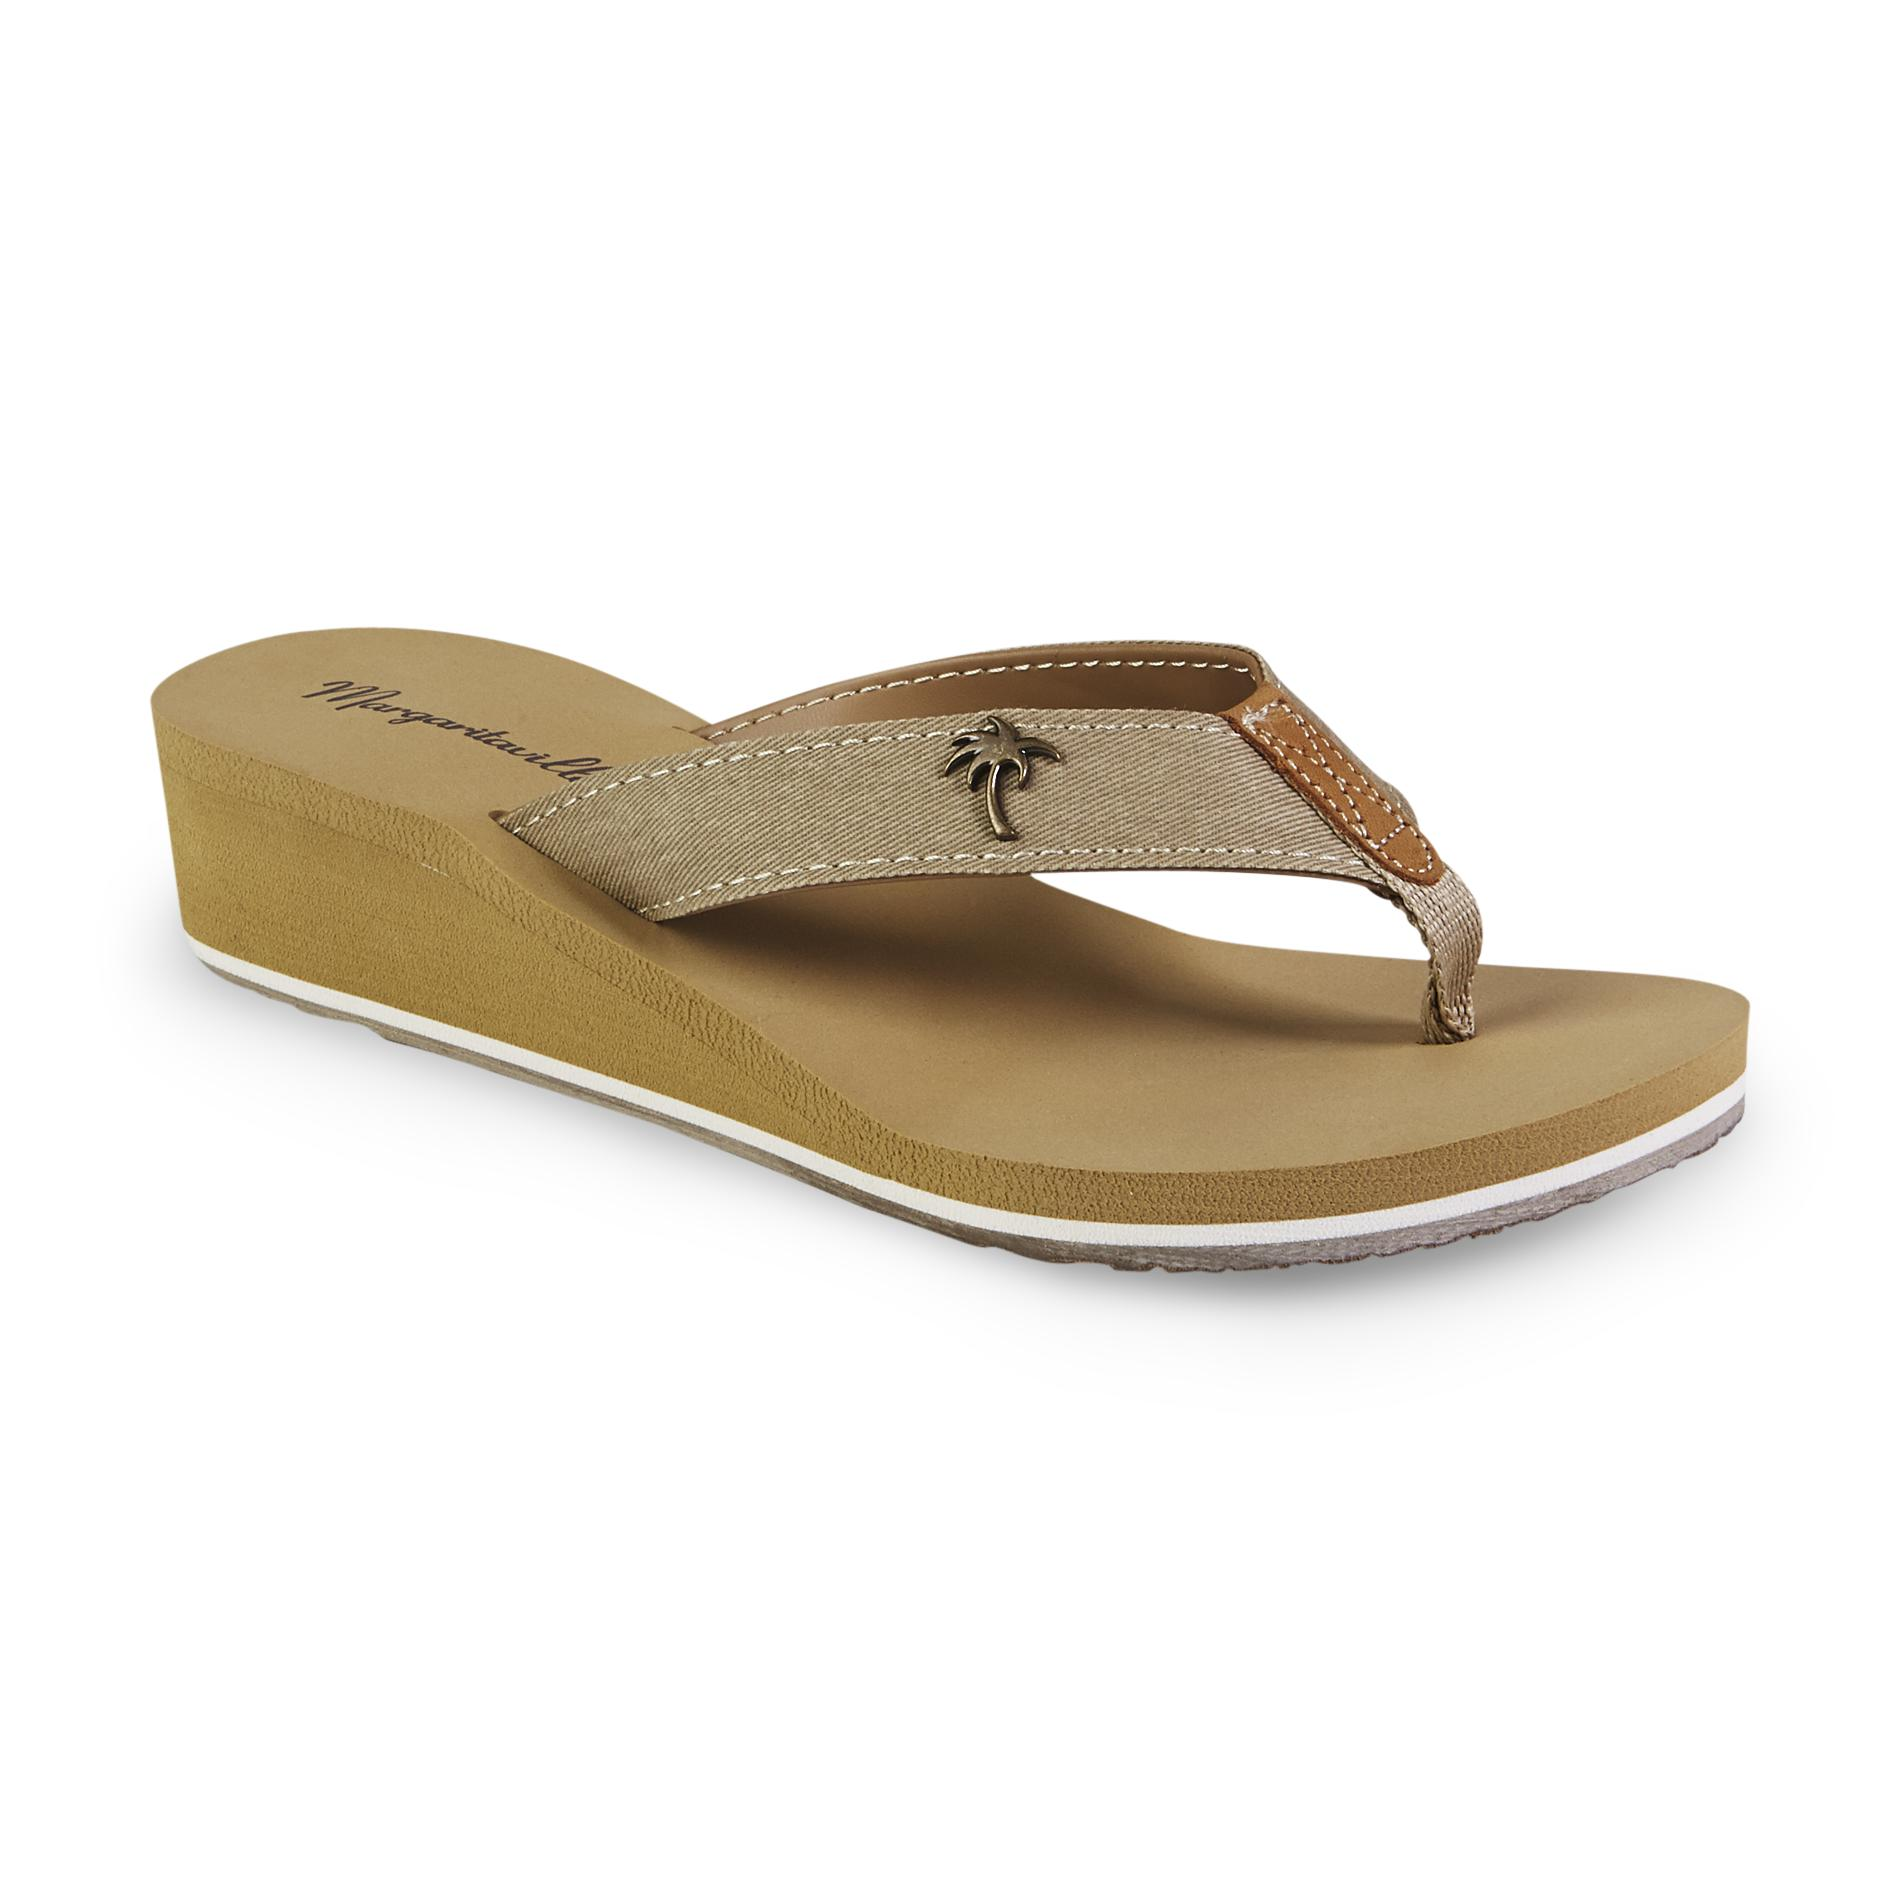 Margaritaville Women's Bermuda Tan Wedge Flip-Flop